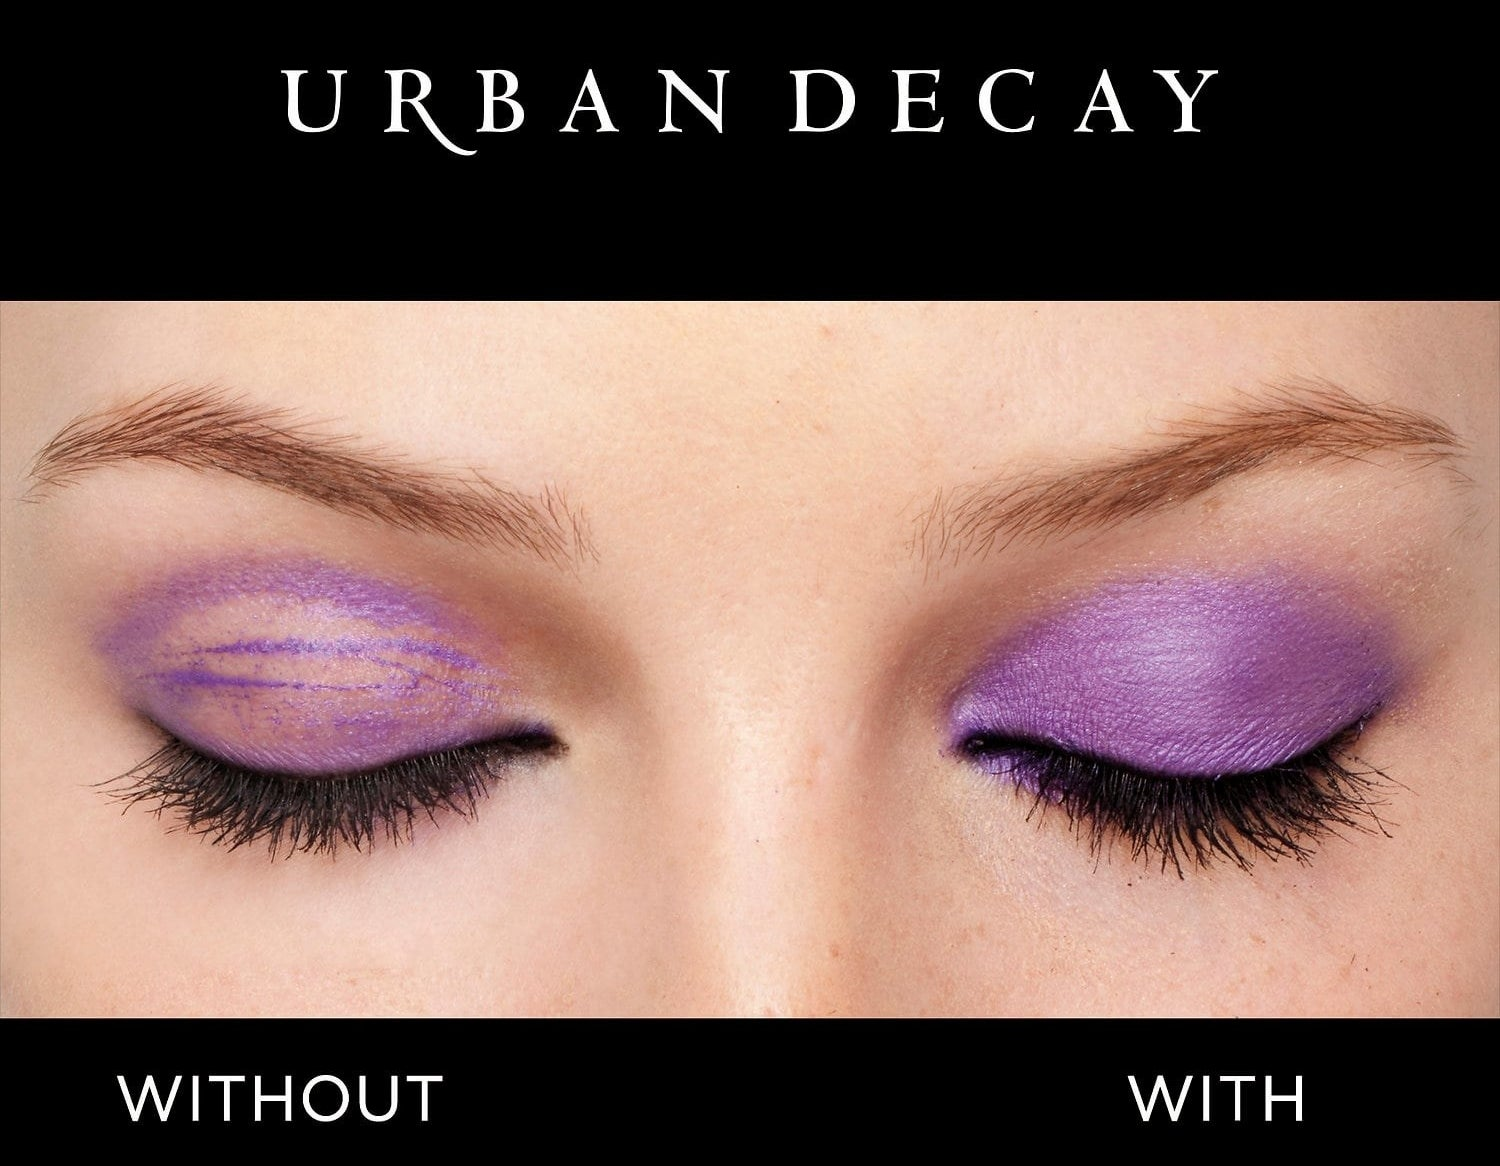 A model with eyeshadow on both eyes, one without the primer (worn away and built up in the crease) and one with (with even, full pigmented coverage)